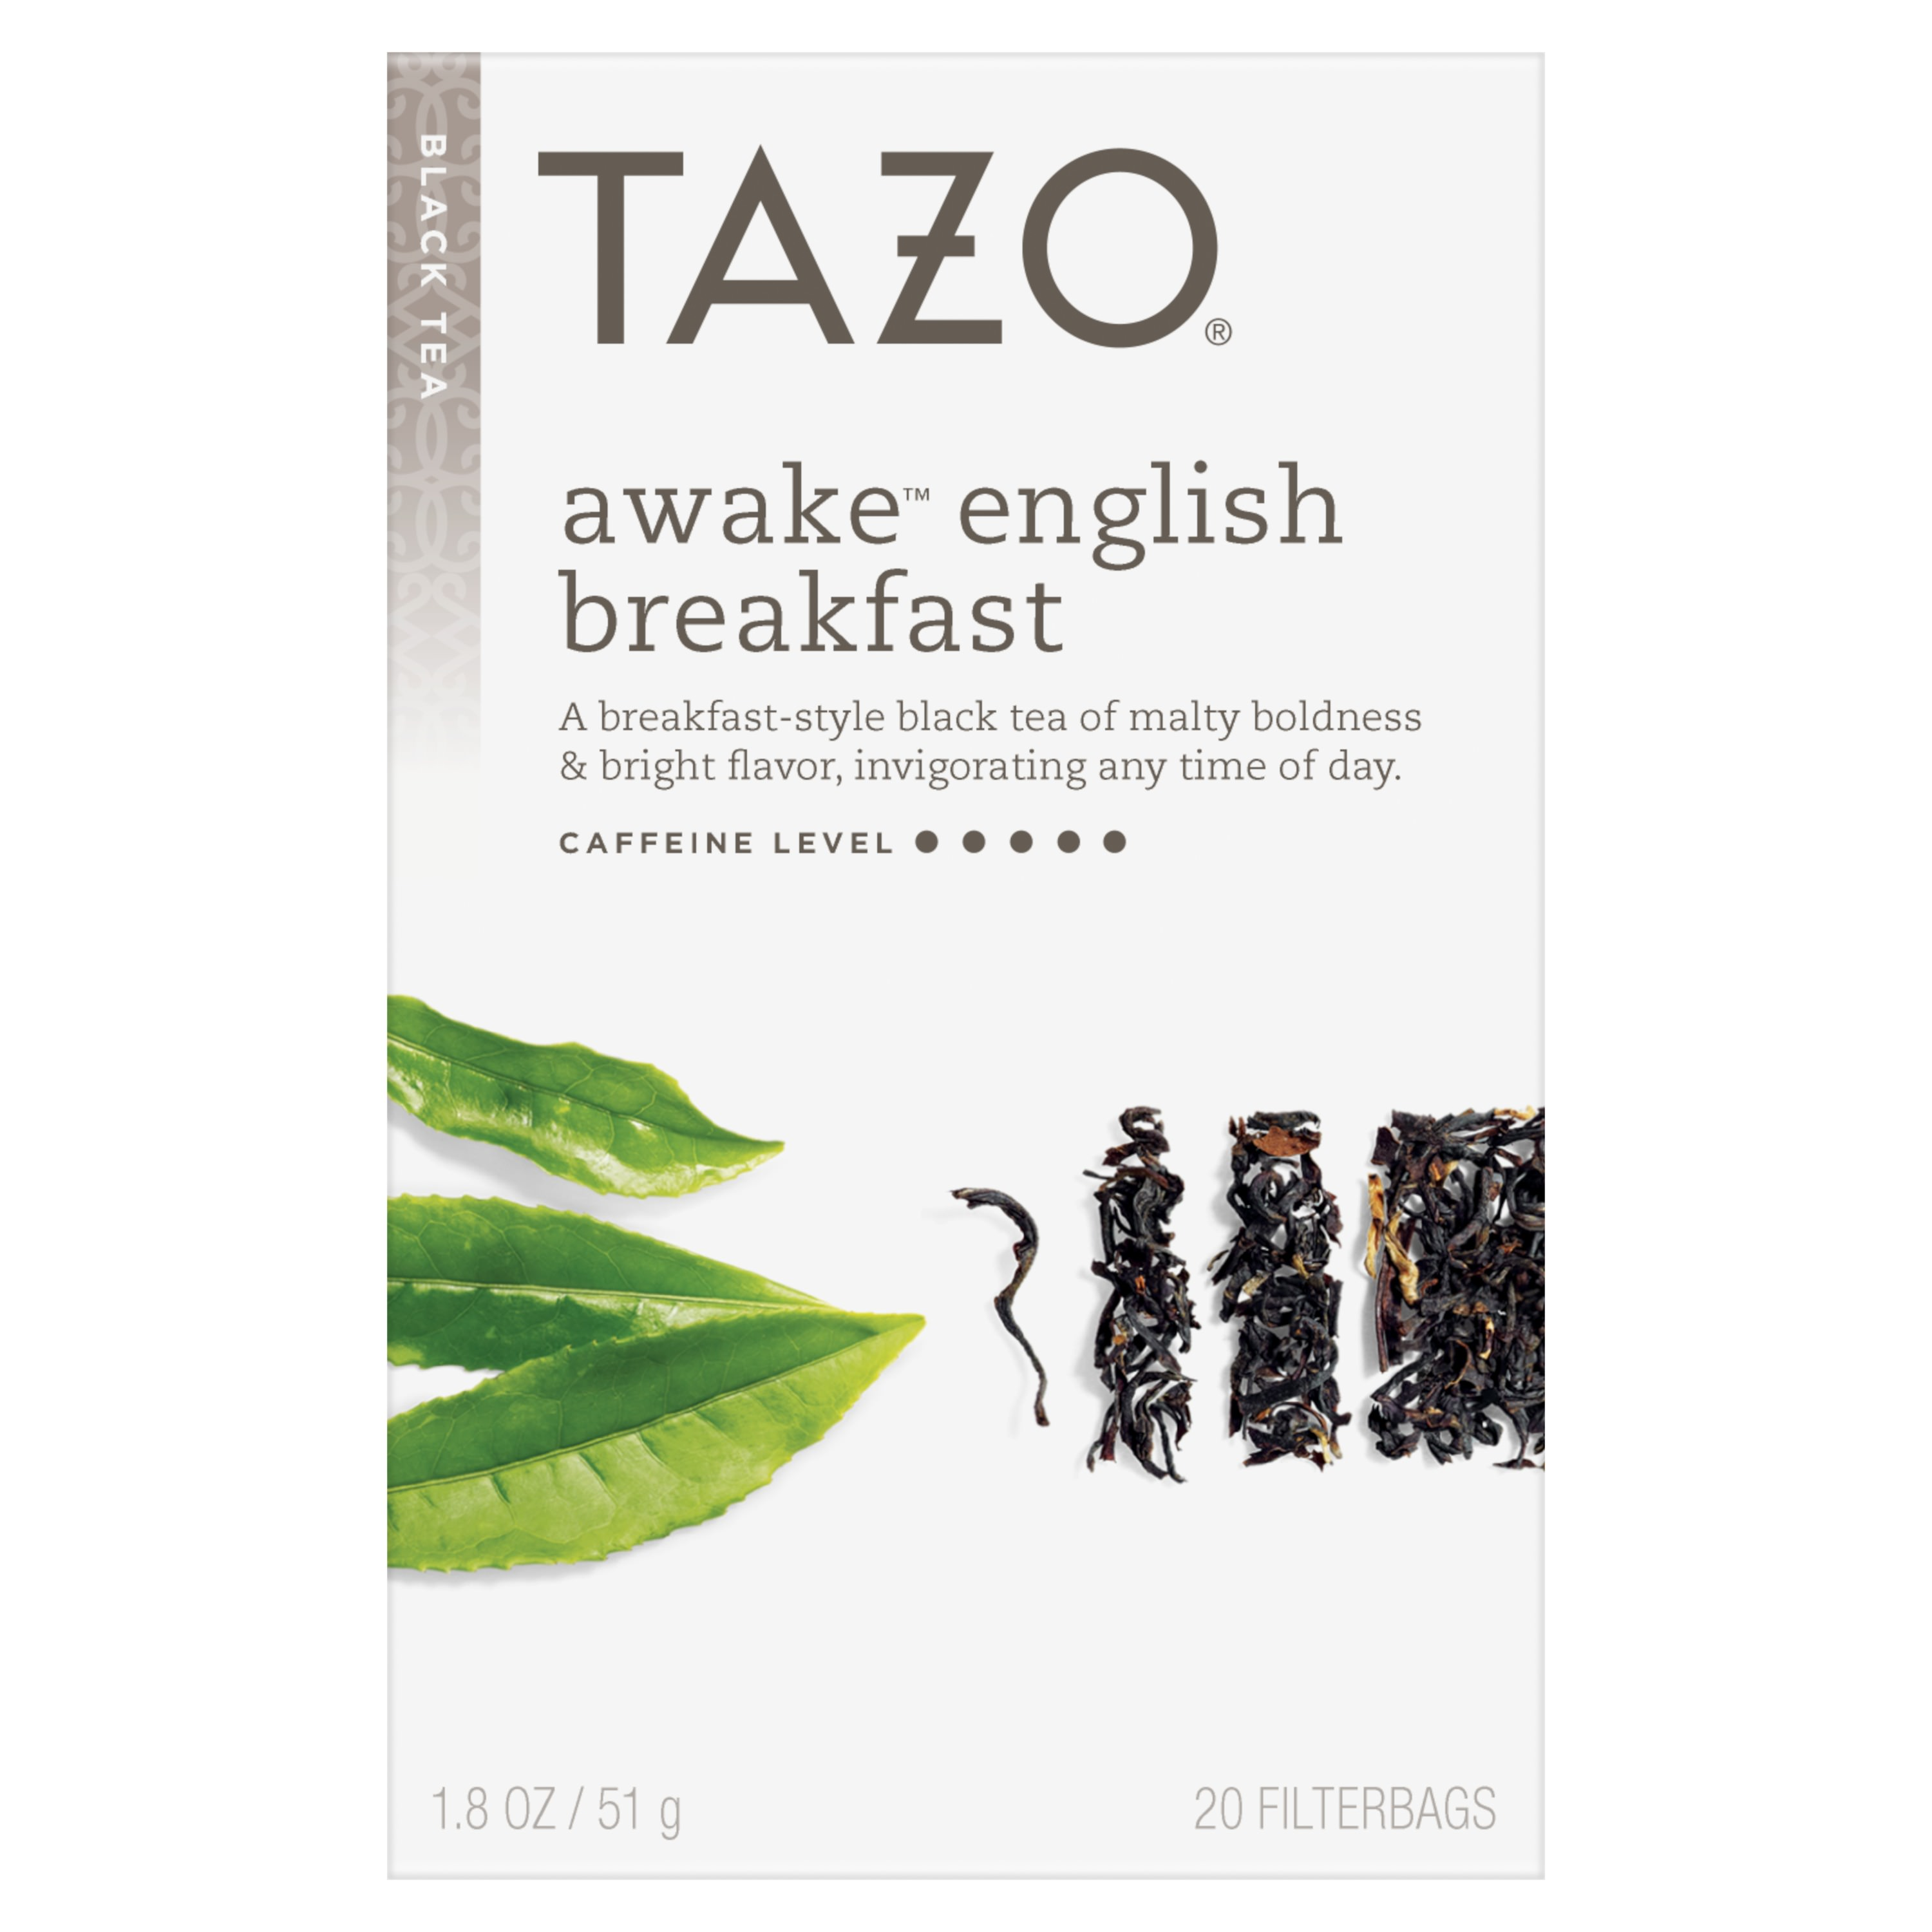 Tazo Awake English Breakfast Tea Bags Black tea 20ct